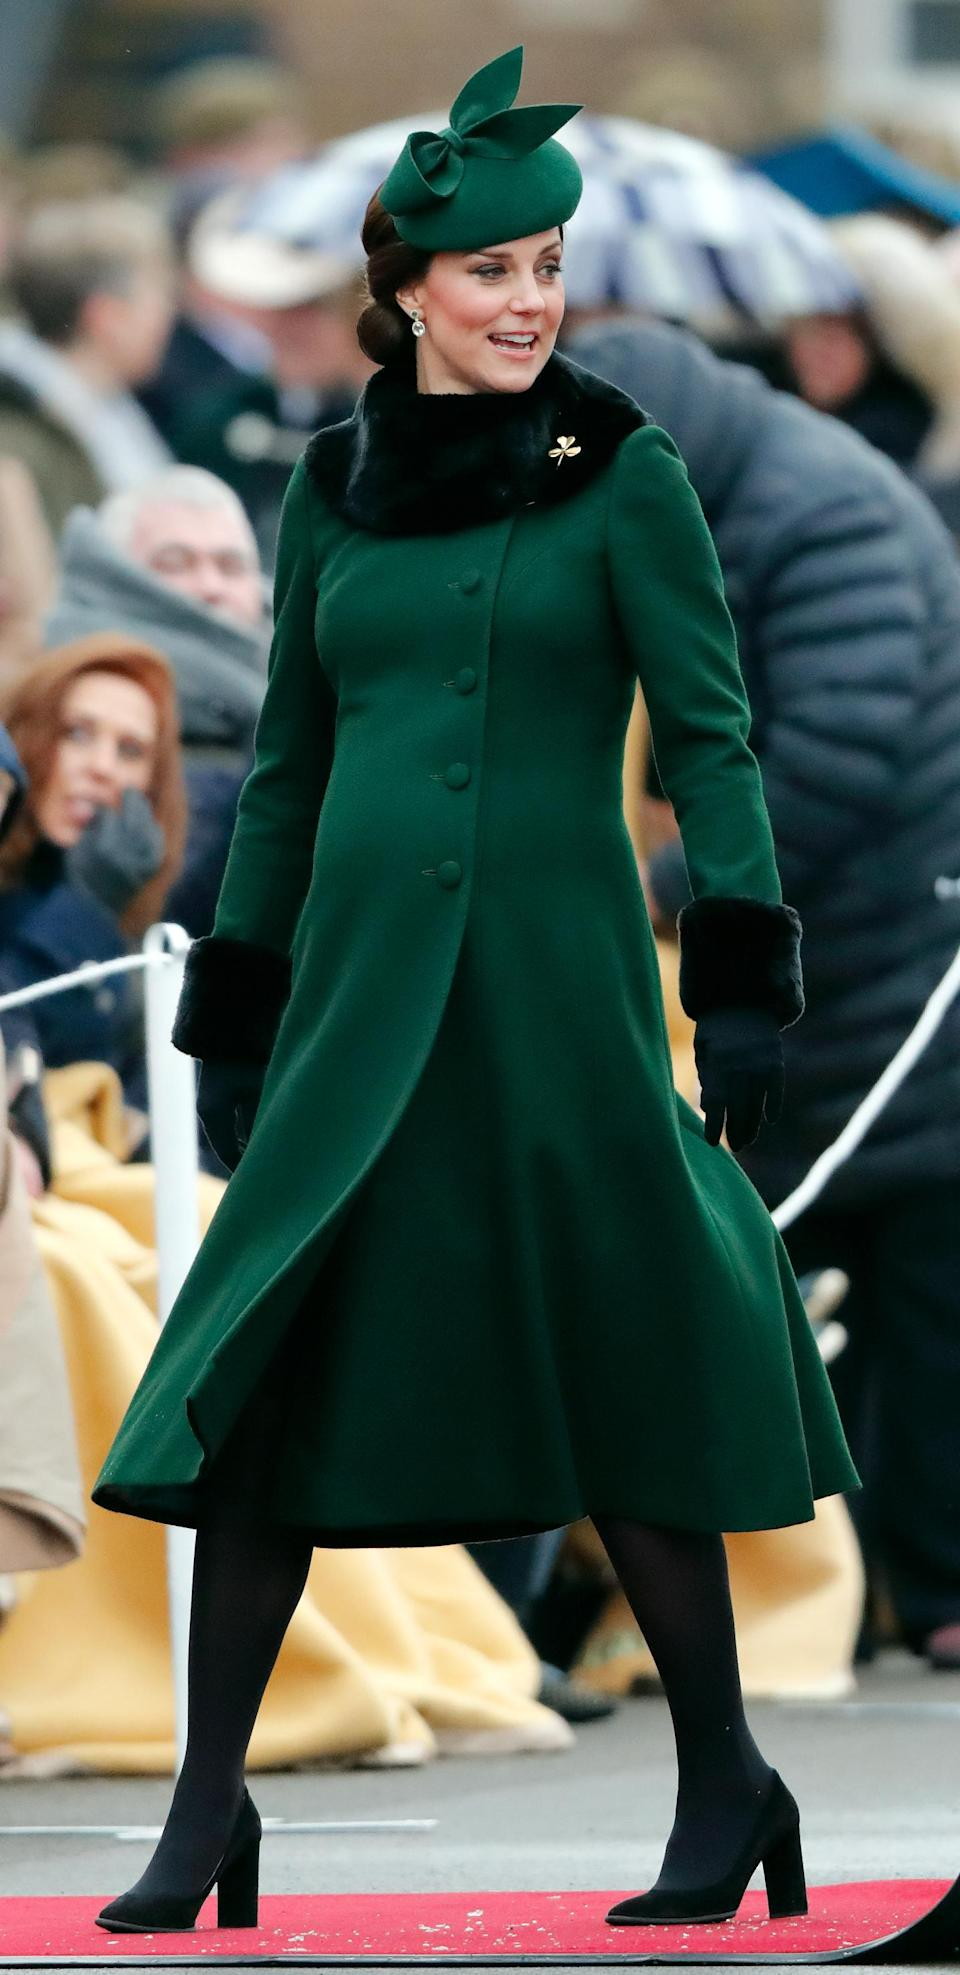 <p><strong>The occassion:</strong> The Annual Irish Guards St Patrick's Day Parade at Cavalry Barracks.<br><strong>The look:</strong> A green Catherine Walker coat with a matching hat and dark tights. <br>[Photo: Getty] </p>